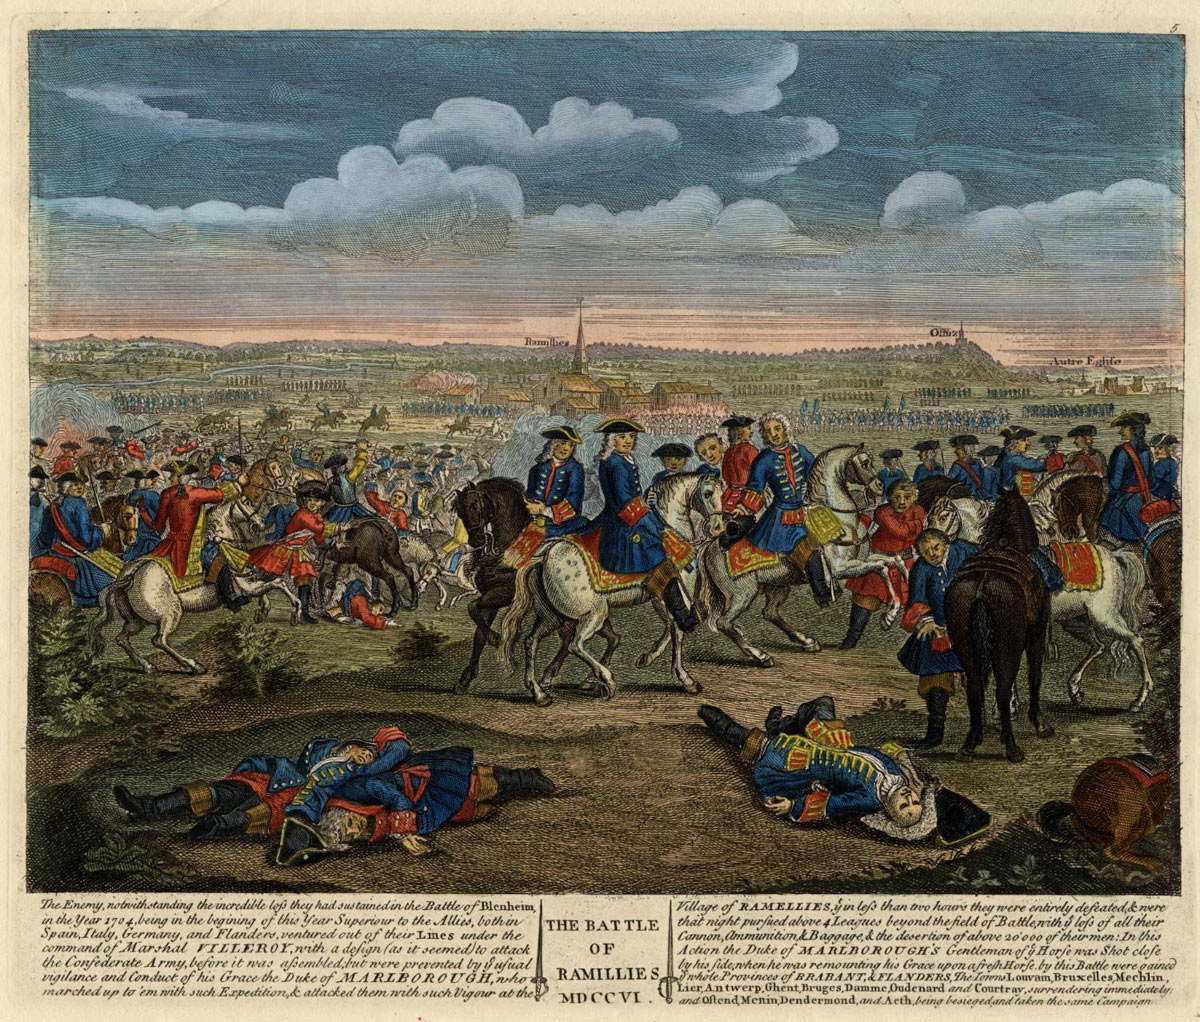 Battle of Ramillies 12th May 1706 in the War of the Spanish Succession: click here to buy this picture